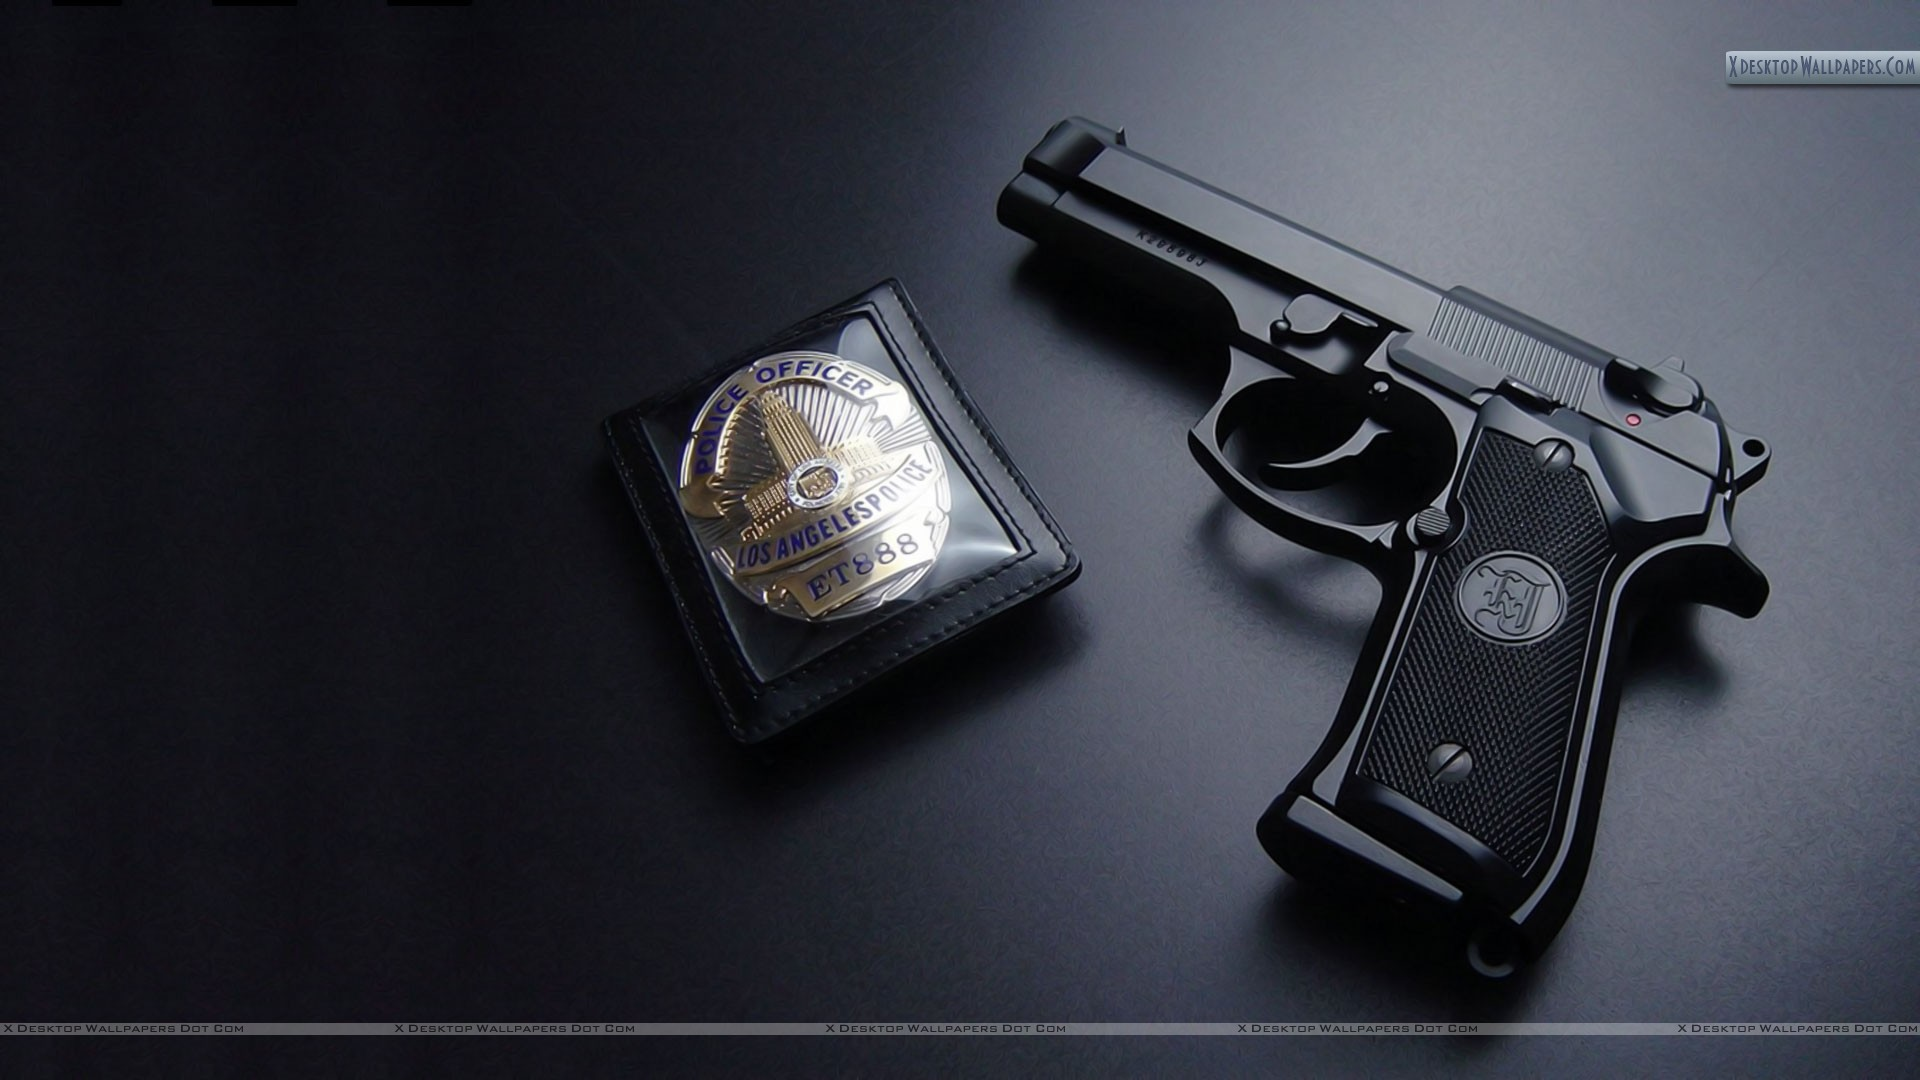 Police Wallpapers Free